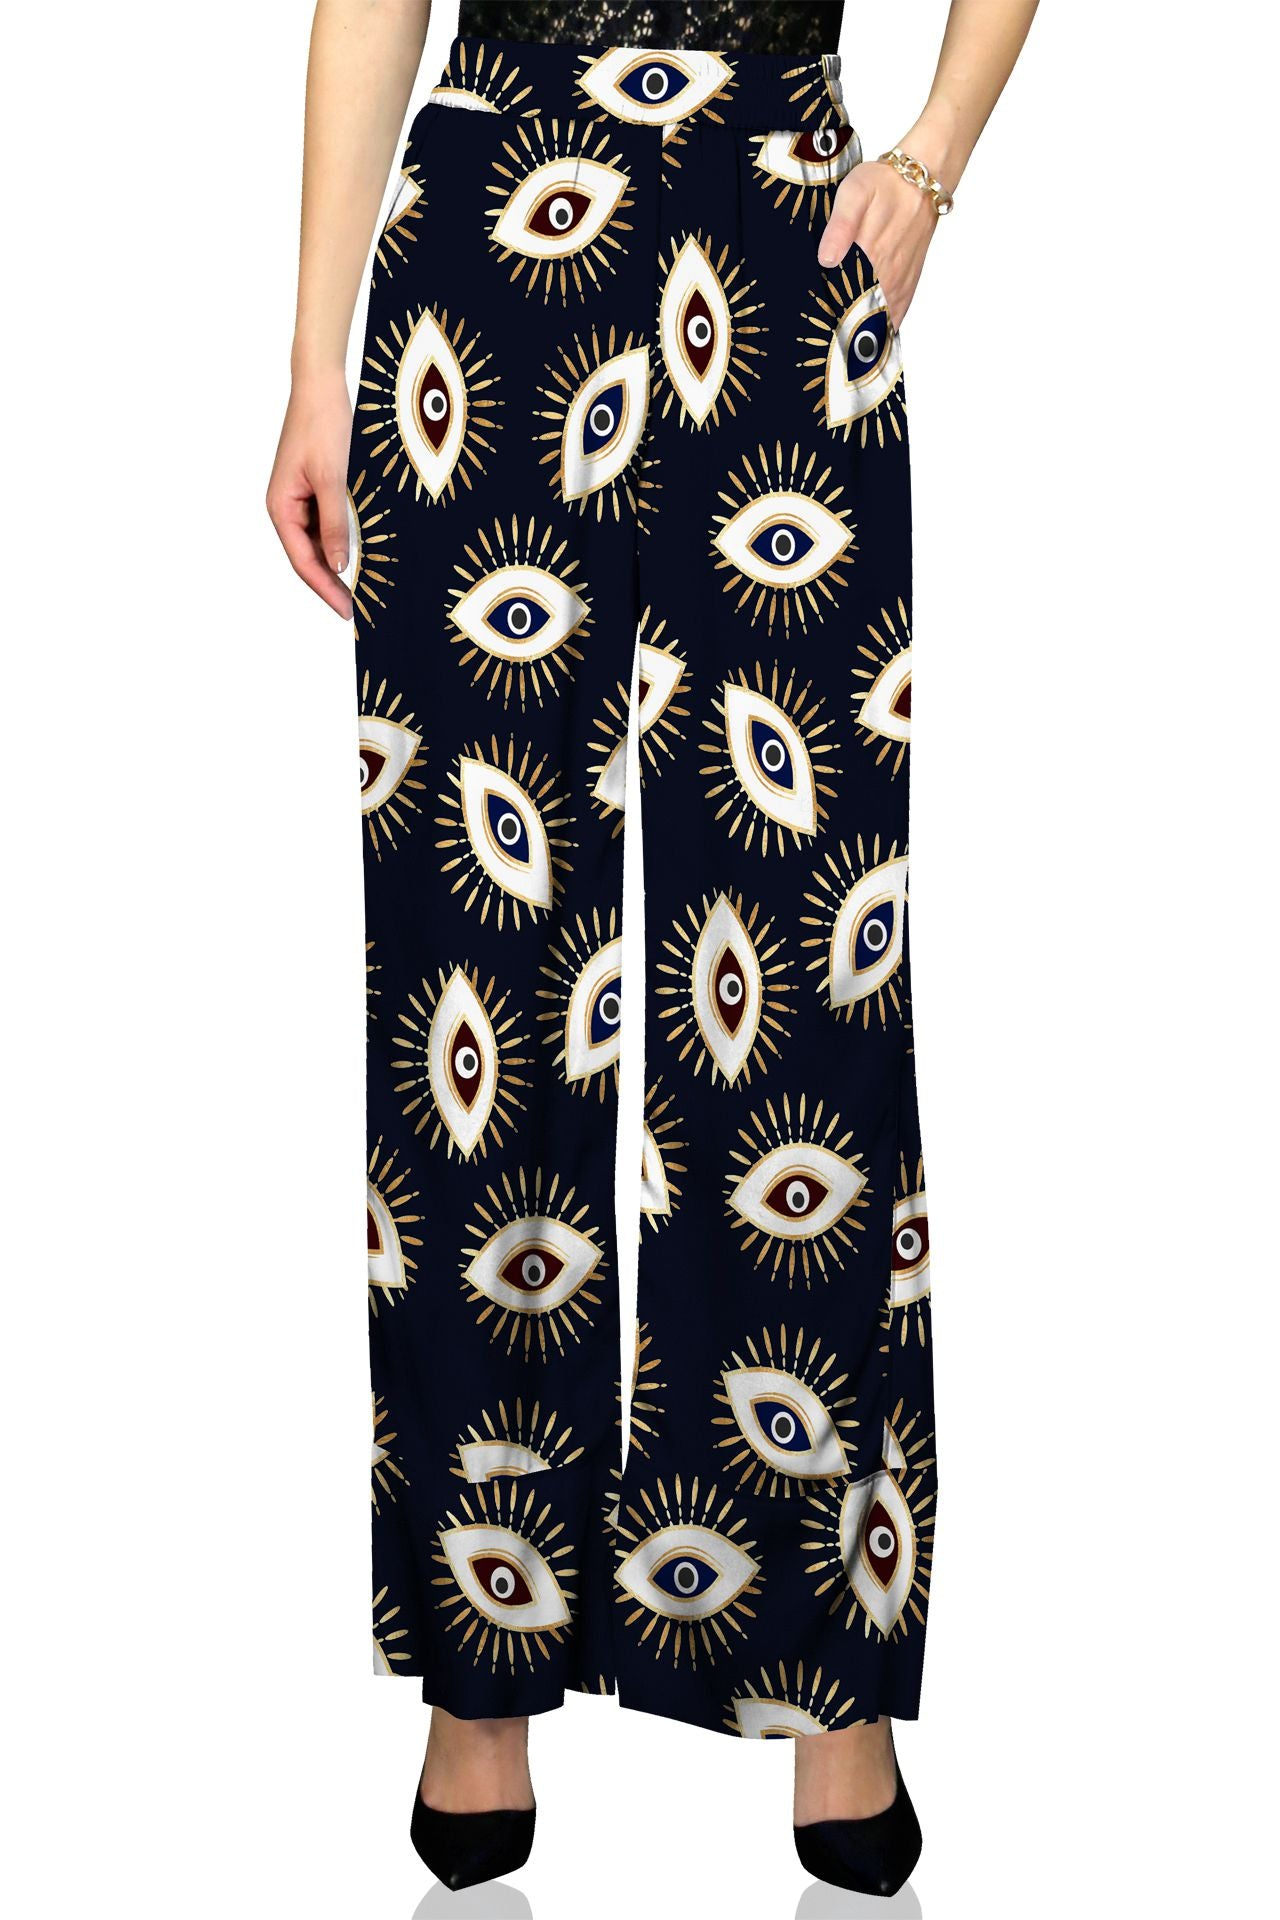 Evil Eye Black Designer Pants made with Biodegradable Fabrics